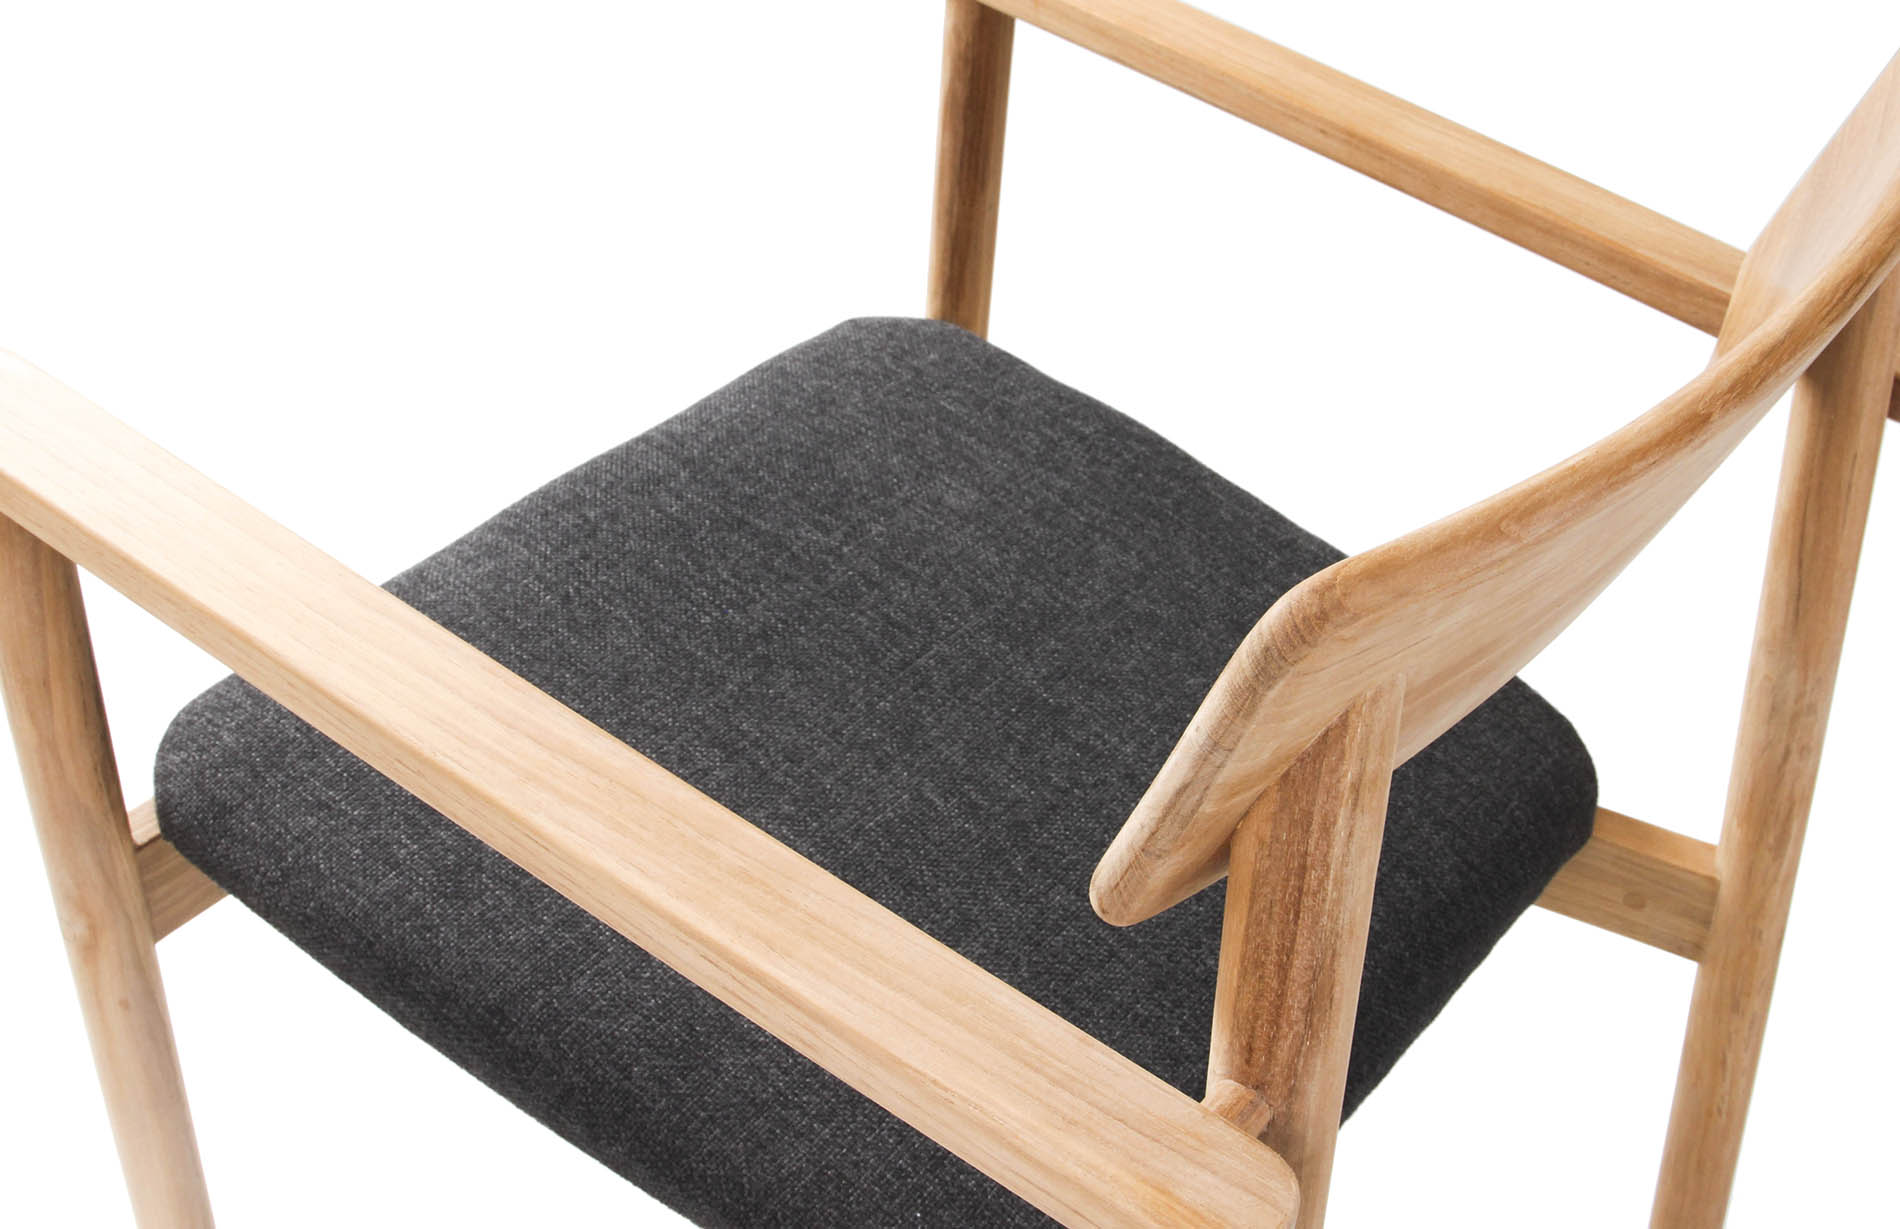 Vera Upholdstered seat chair 6a.jpg